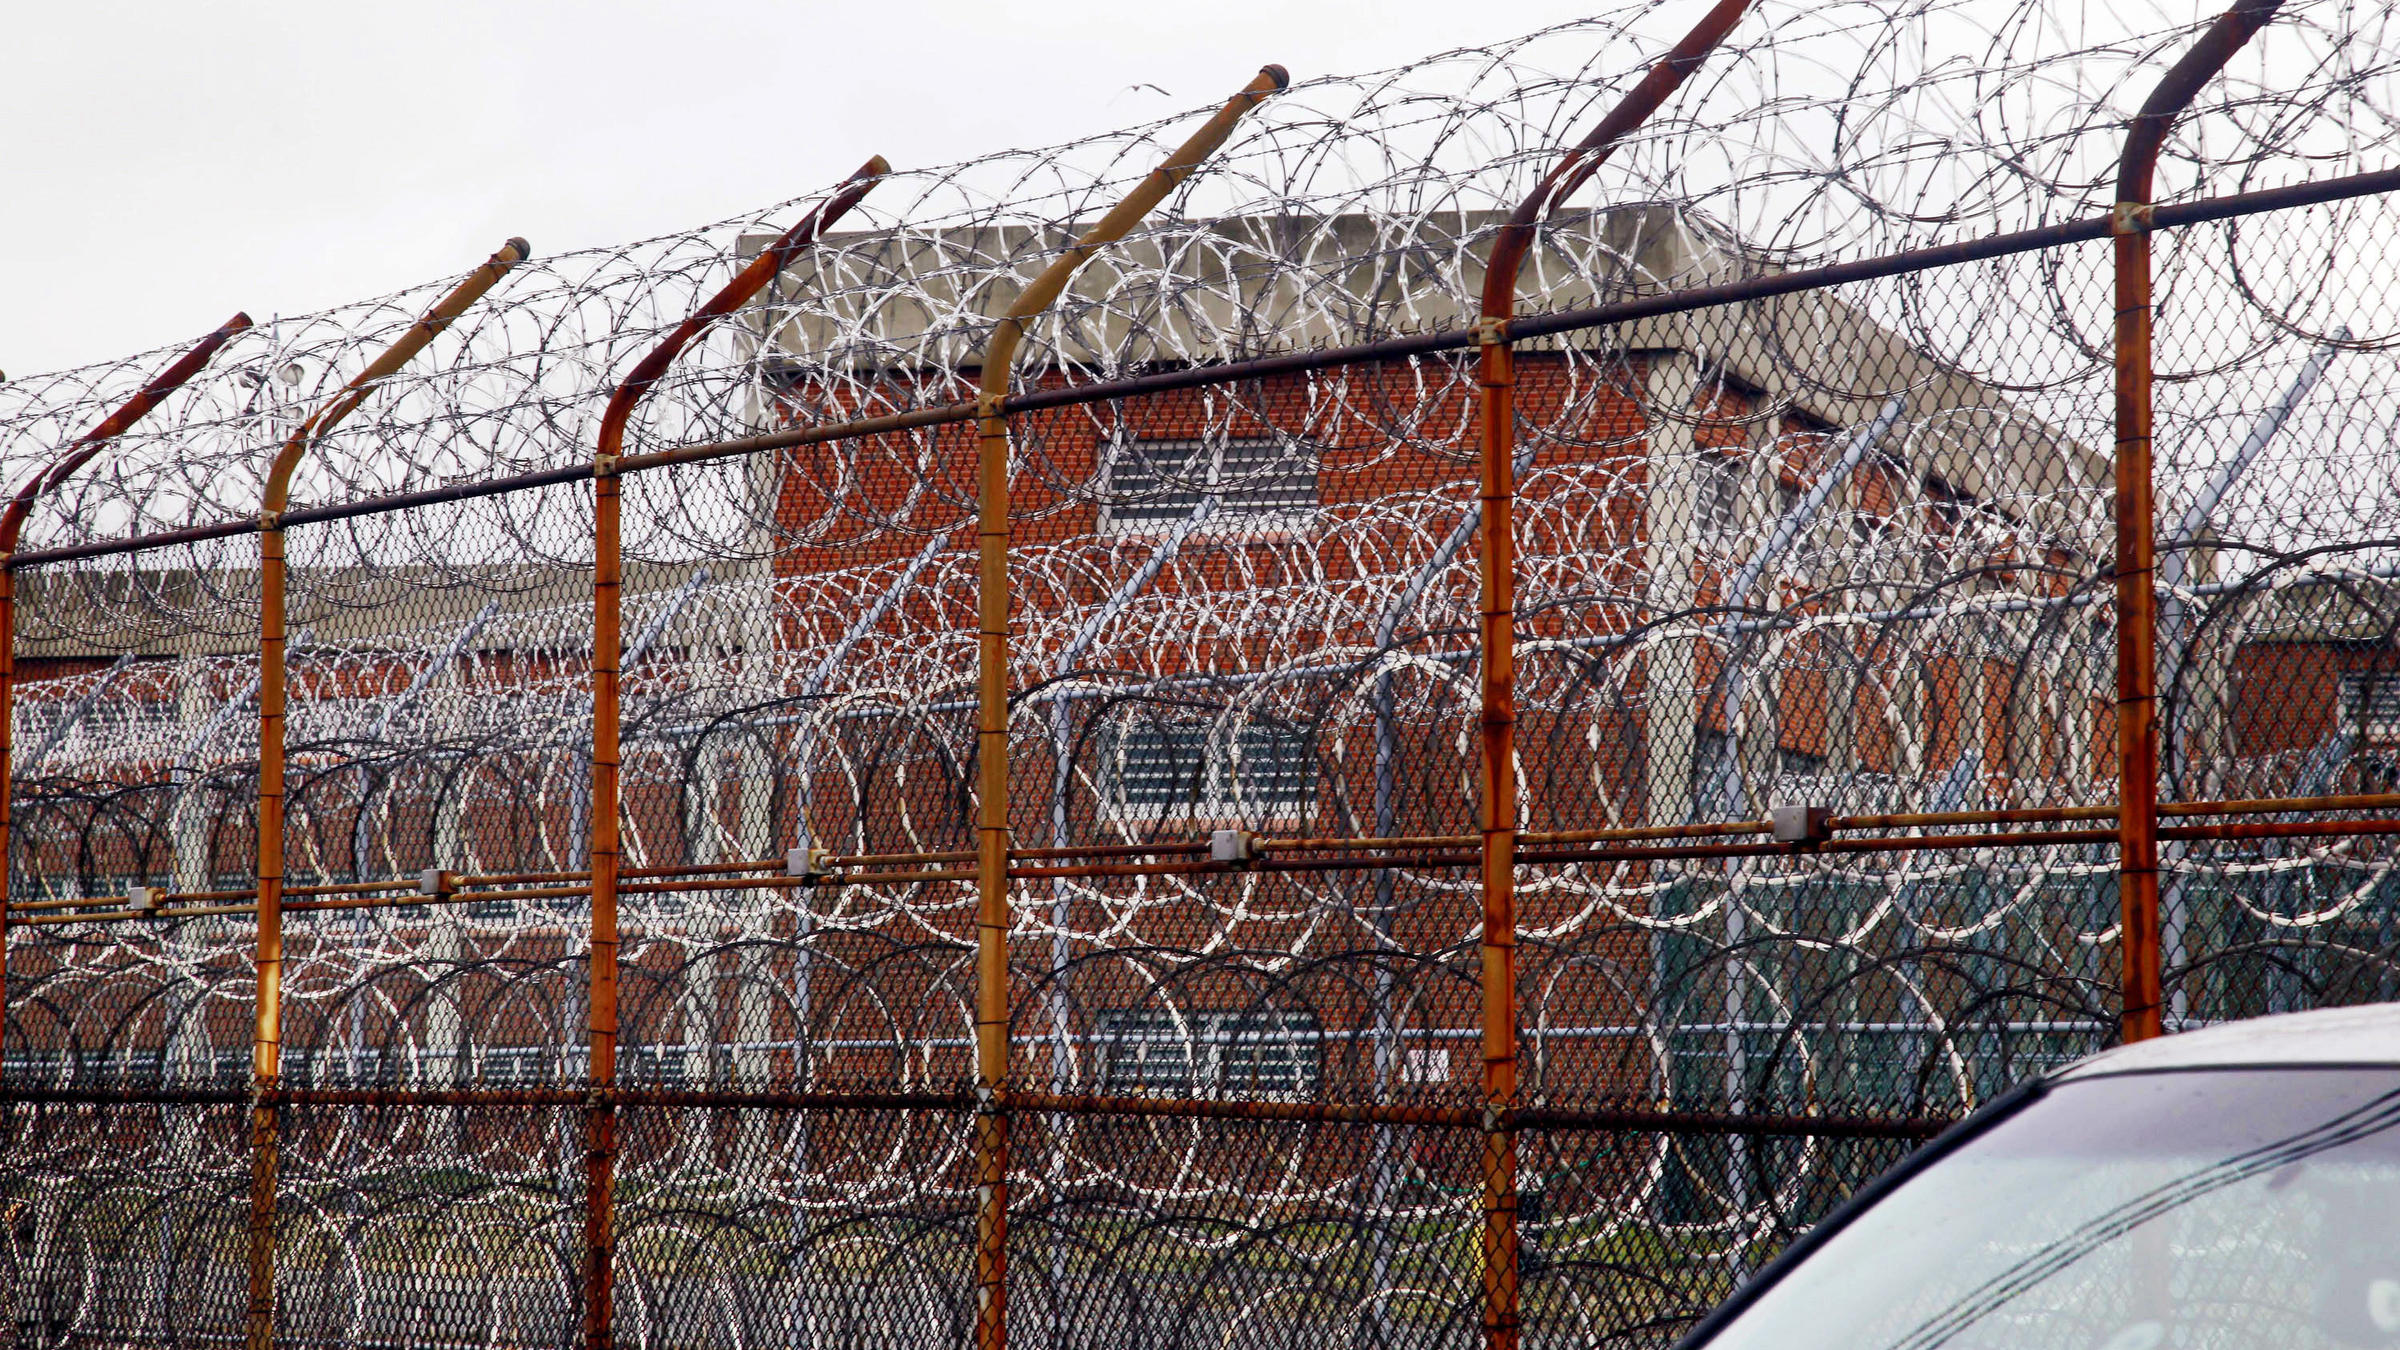 Mayor, council reach deal to close Rikers Island jail complex